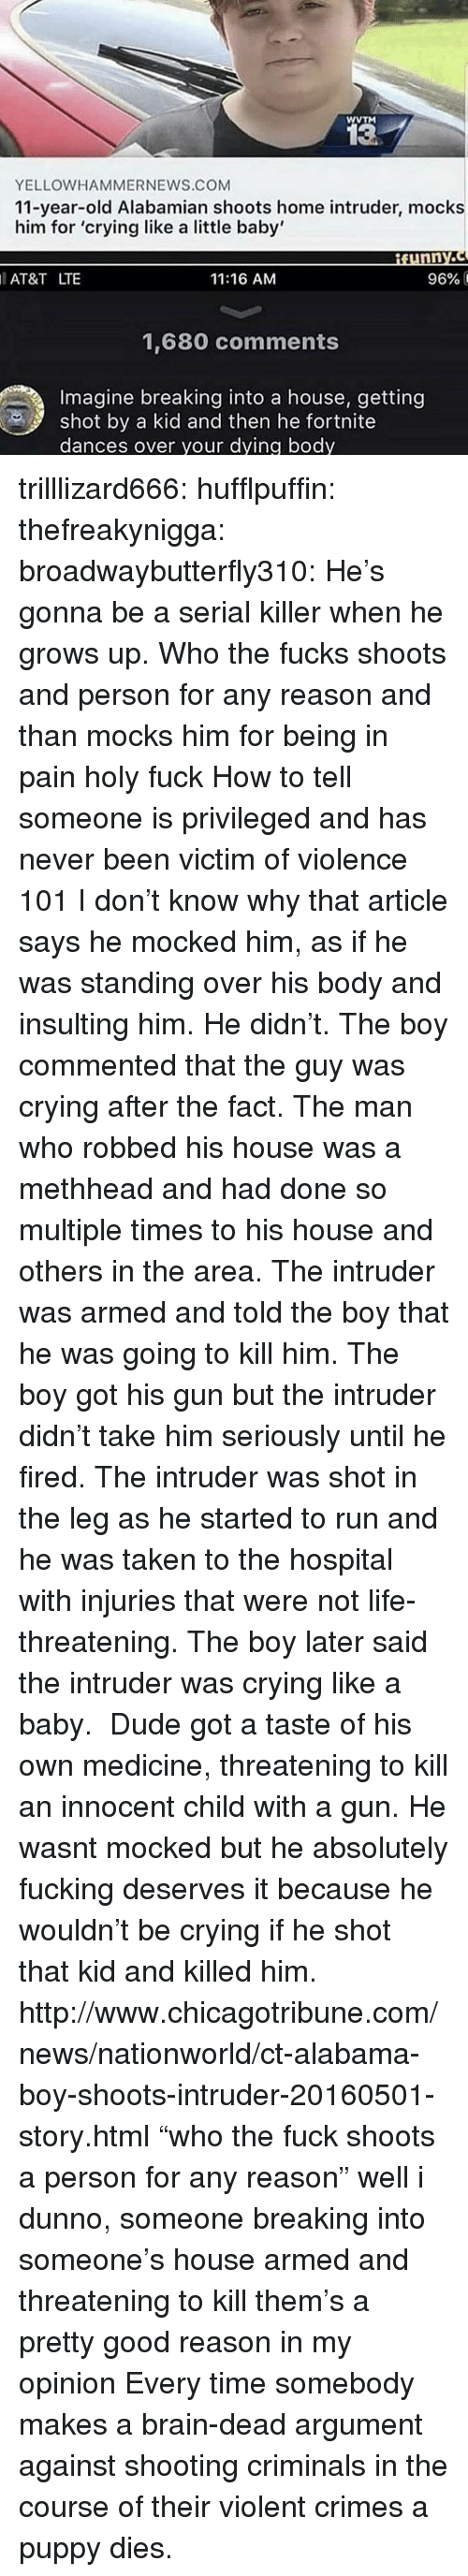 """Crying, Dude, and Fucking: WVTM  13  YELLOWHAMMERNEWS.COM  11-year-old Alabamian shoots home intruder, mocks  him for 'crying like a little baby'  AT&T LTE  11:16 AM  96% і  1,680 comments  Imagine breaking into a house, getting  shot by a kid and then he fortnite  dances over your dying body trilllizard666:  hufflpuffin:  thefreakynigga:  broadwaybutterfly310: He's gonna be a serial killer when he grows up. Who the fucks shoots and person for any reason and than mocks him for being in pain holy fuck How to tell someone is privileged and has never been victim of violence 101  I don't know why that article says he mocked him, as if he was standing over his body and insulting him. He didn't. The boy commented that the guy was crying after the fact. The man who robbed his house was a methheadand had done so multiple times to his house and others in the area. The intruder was armed and told the boy that he was going to kill him. The boy got his gun but the intruder didn't take him seriously until he fired. The intruder was shot in the leg as he started to run and he was taken to the hospital with injuries that were not life-threatening. The boy later said the intruder was crying like a baby. Dude got a taste of his own medicine, threatening to kill an innocent child with a gun. He wasnt mocked but he absolutely fucking deserves it because he wouldn't be crying if he shot that kid and killed him. http://www.chicagotribune.com/news/nationworld/ct-alabama-boy-shoots-intruder-20160501-story.html  """"who the fuck shoots a person for any reason"""" well i dunno, someone breaking into someone's house armed and threatening to kill them's a pretty good reason in my opinion   Every time somebody makes a brain-dead argument against shooting criminals in the course of their violent crimes a puppy dies."""